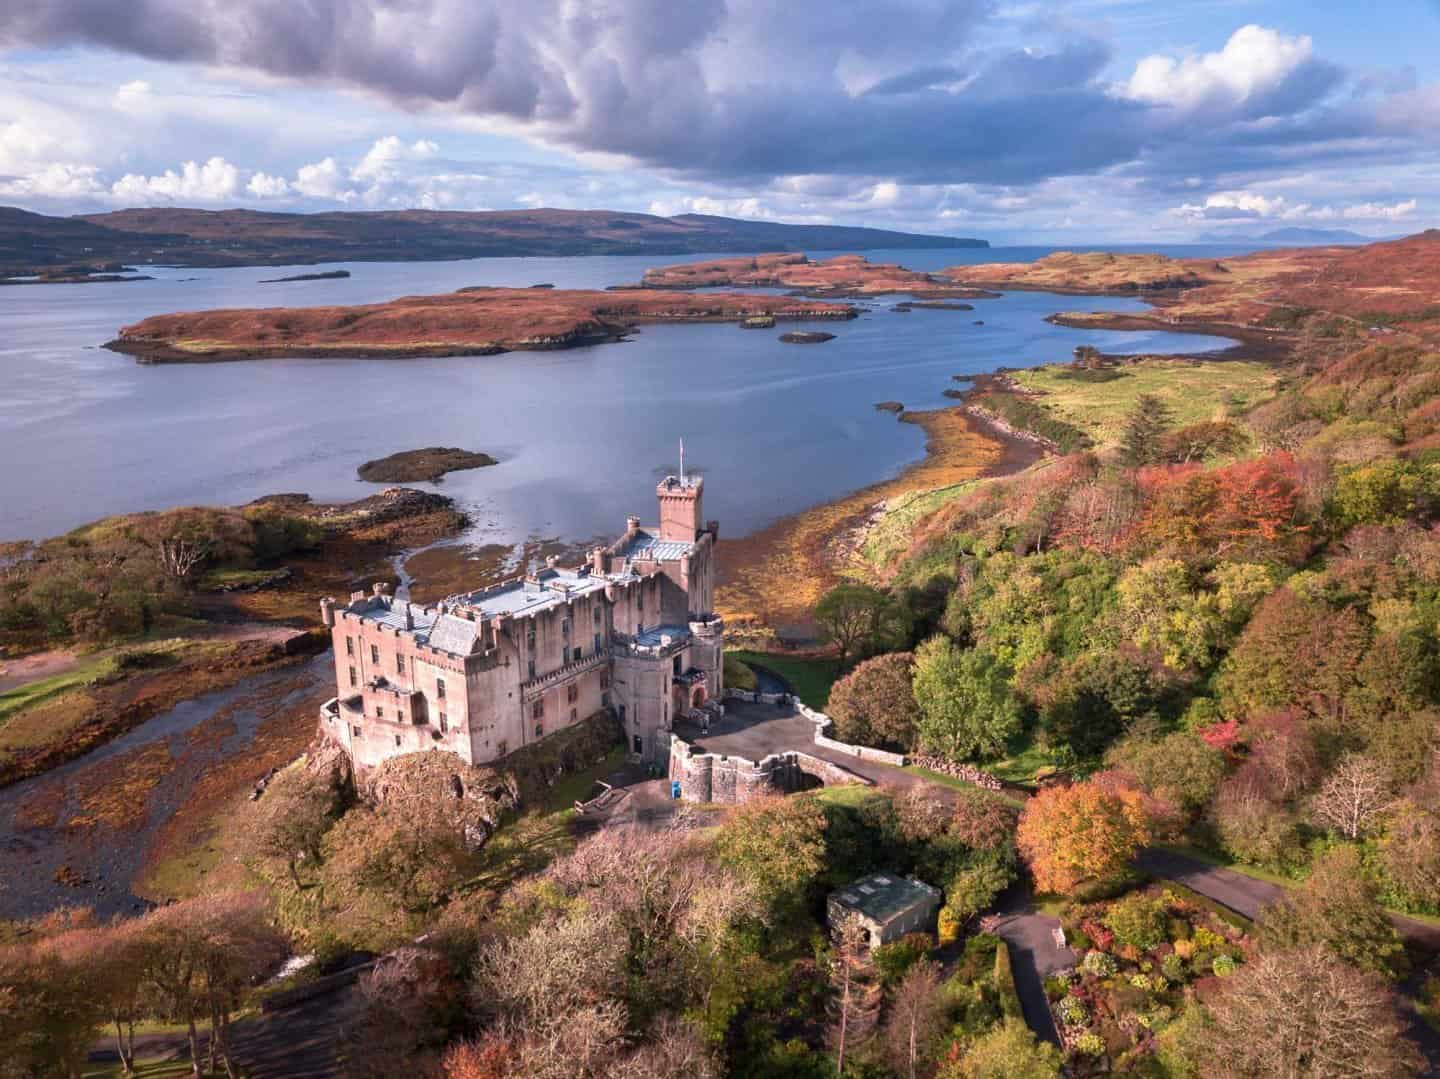 An aerial view of Dunvegan Castle on the Isle of Skye in Scotland.